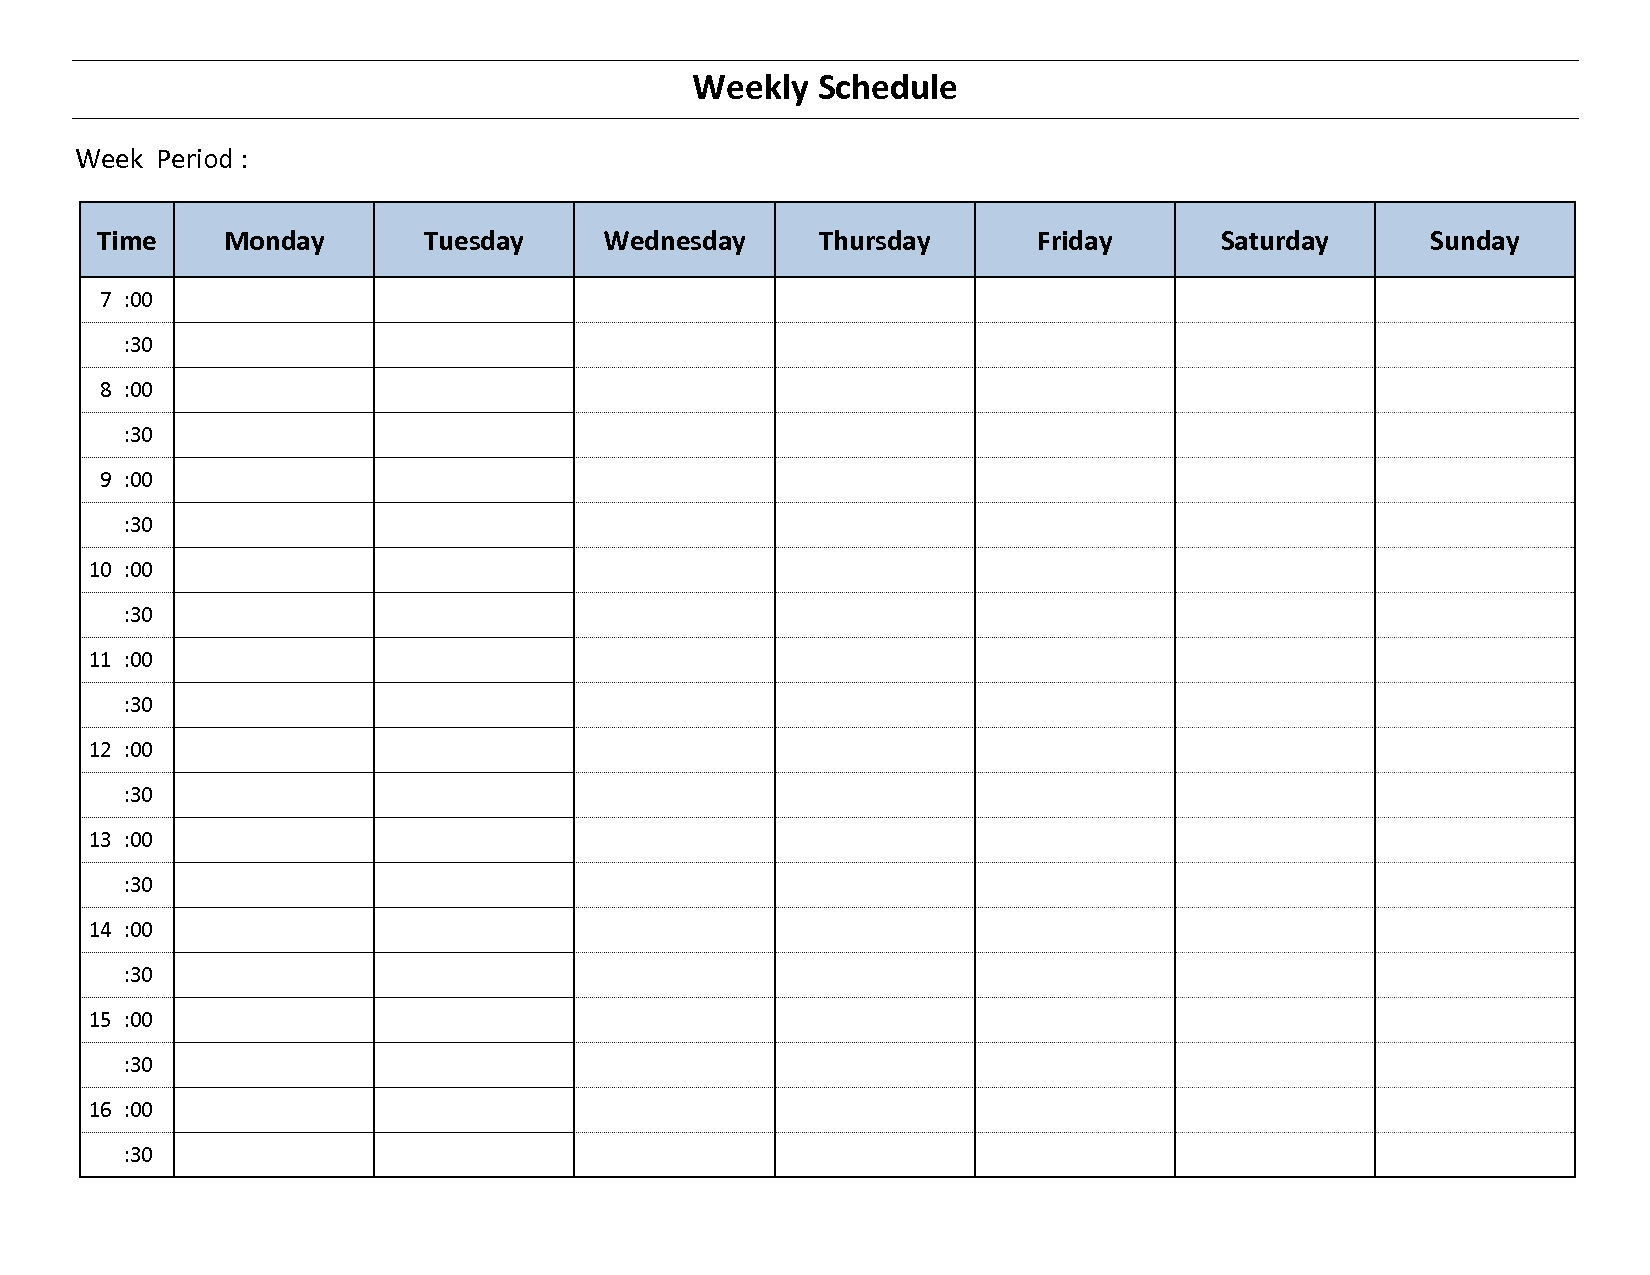 Construction Schedule Template Excel Free Download | Weekly